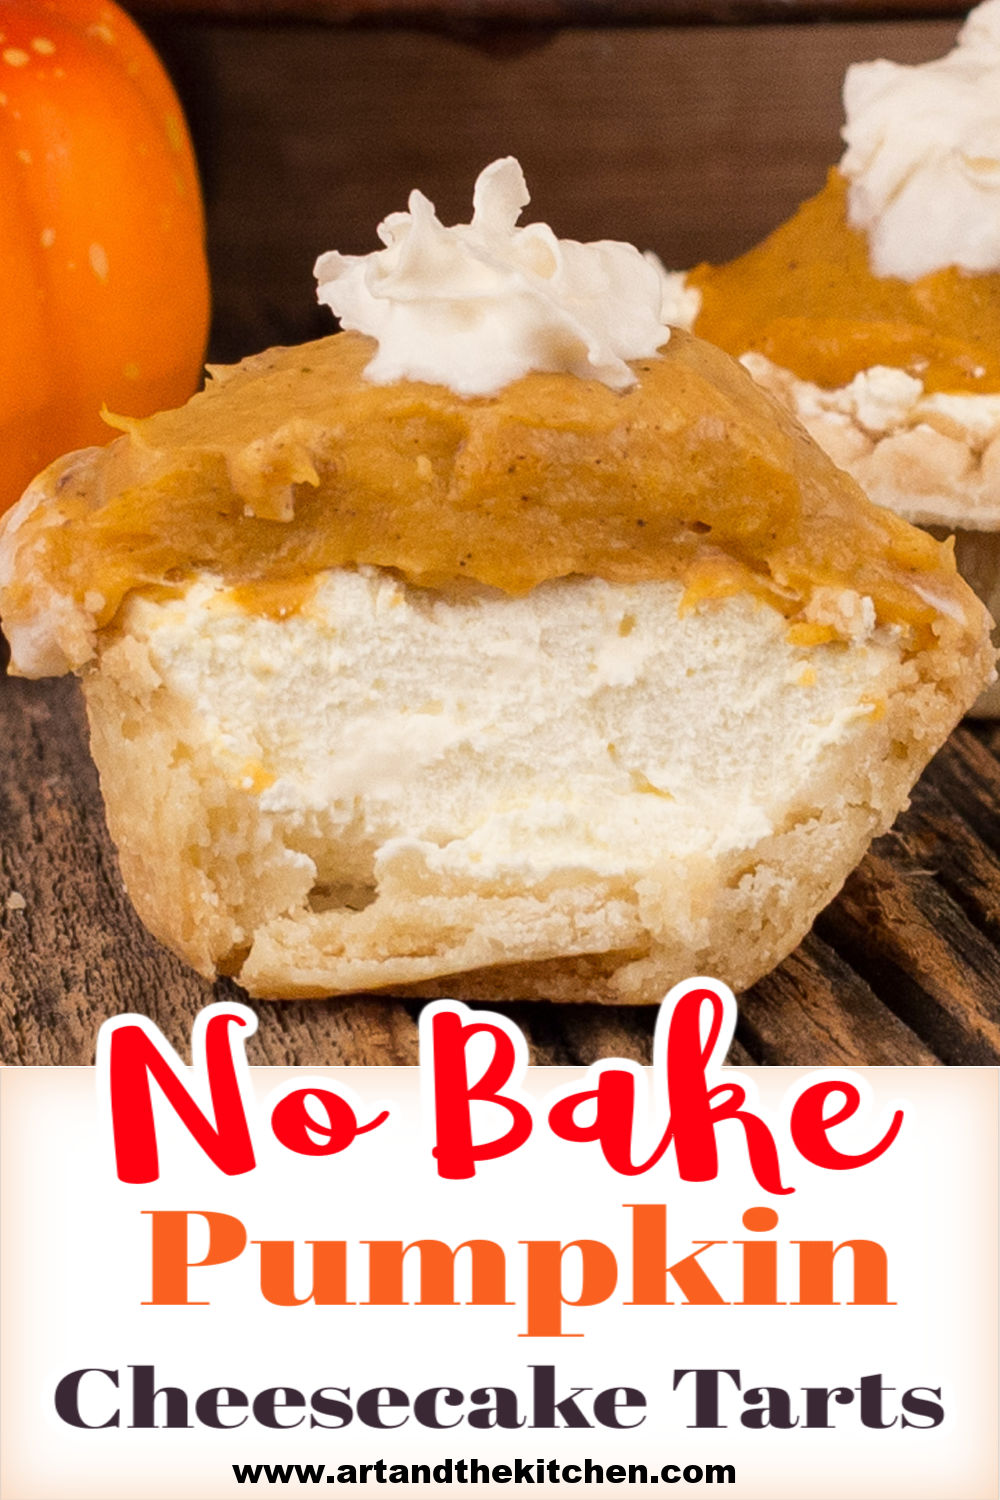 Pumpkin Cheesecake Tarts have delicious layers of cream cheese, pumpkin filling, in a flaky tart shell. Topped with a dollop of whipped cream. via @artandthekitch